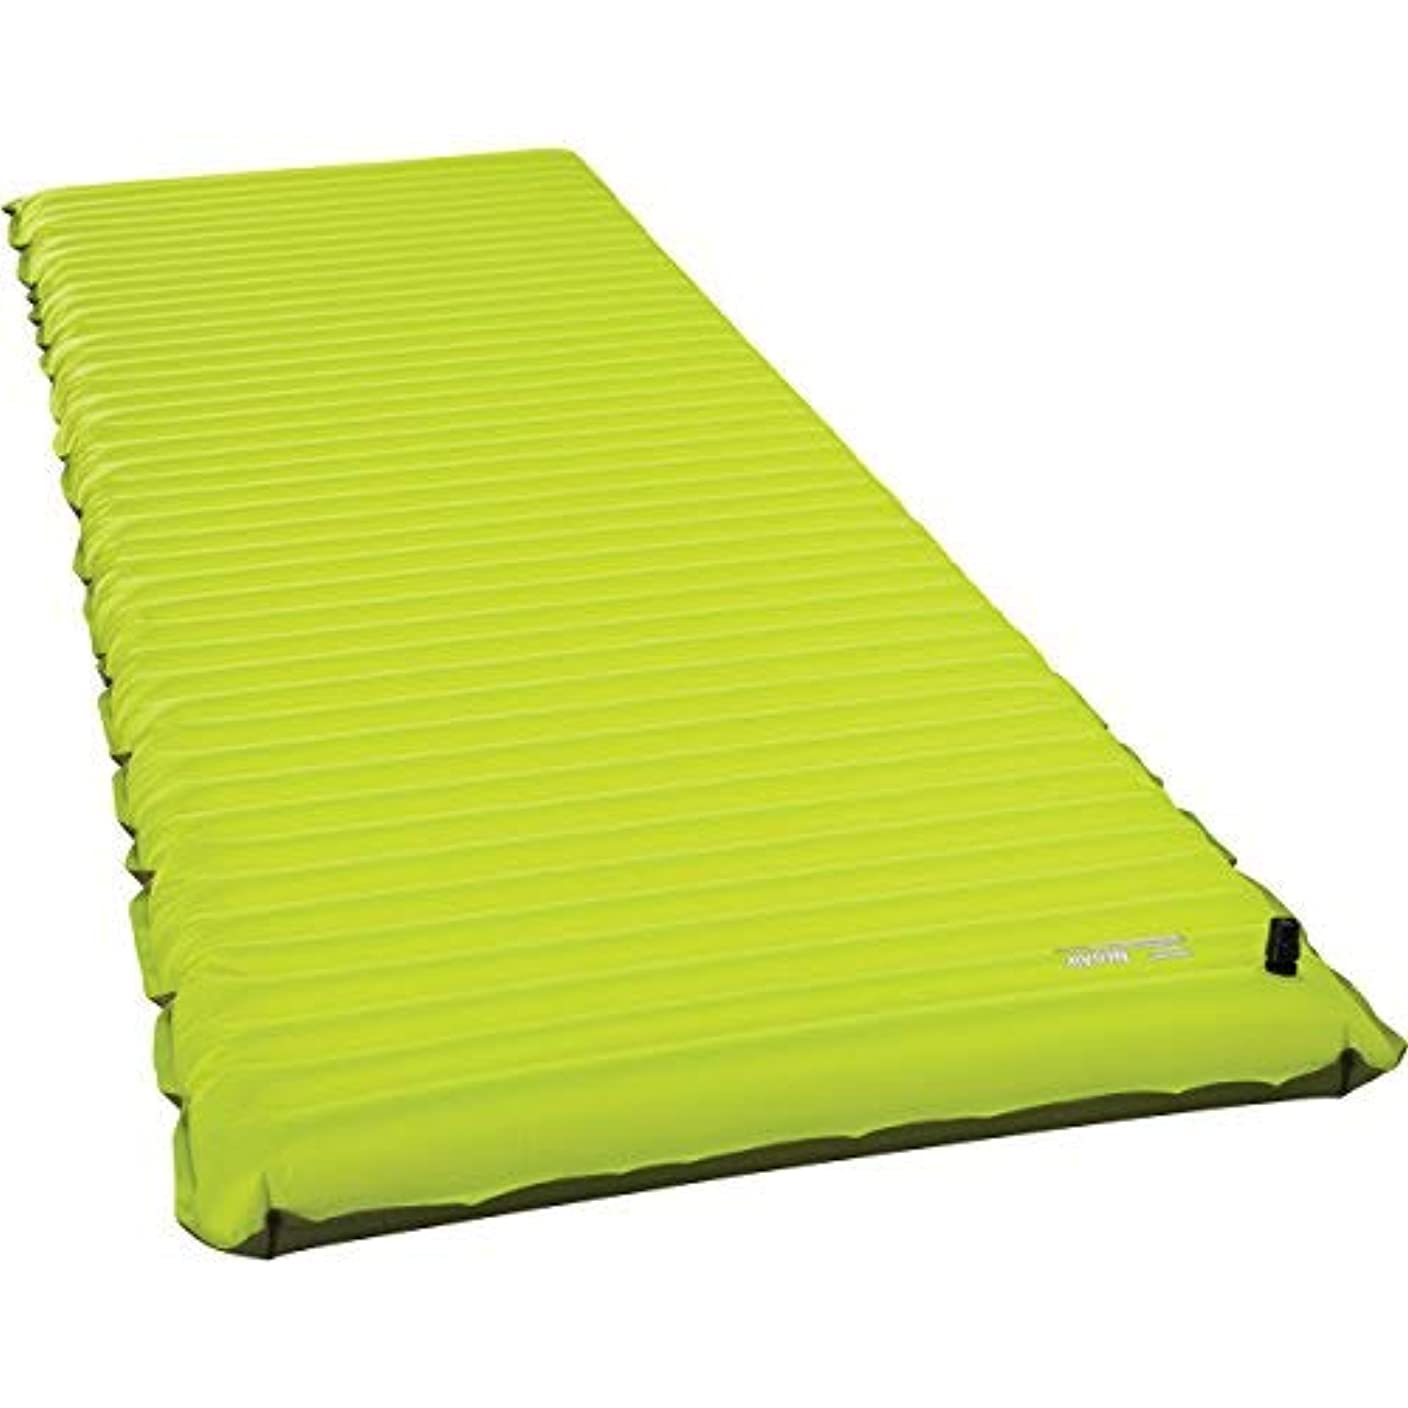 競う芸術的塩辛いTherm-a-Rest NeoAir Trekker Lightweight Backpacking Air Mattress, Regular - 20 x 72 Inches [並行輸入品]